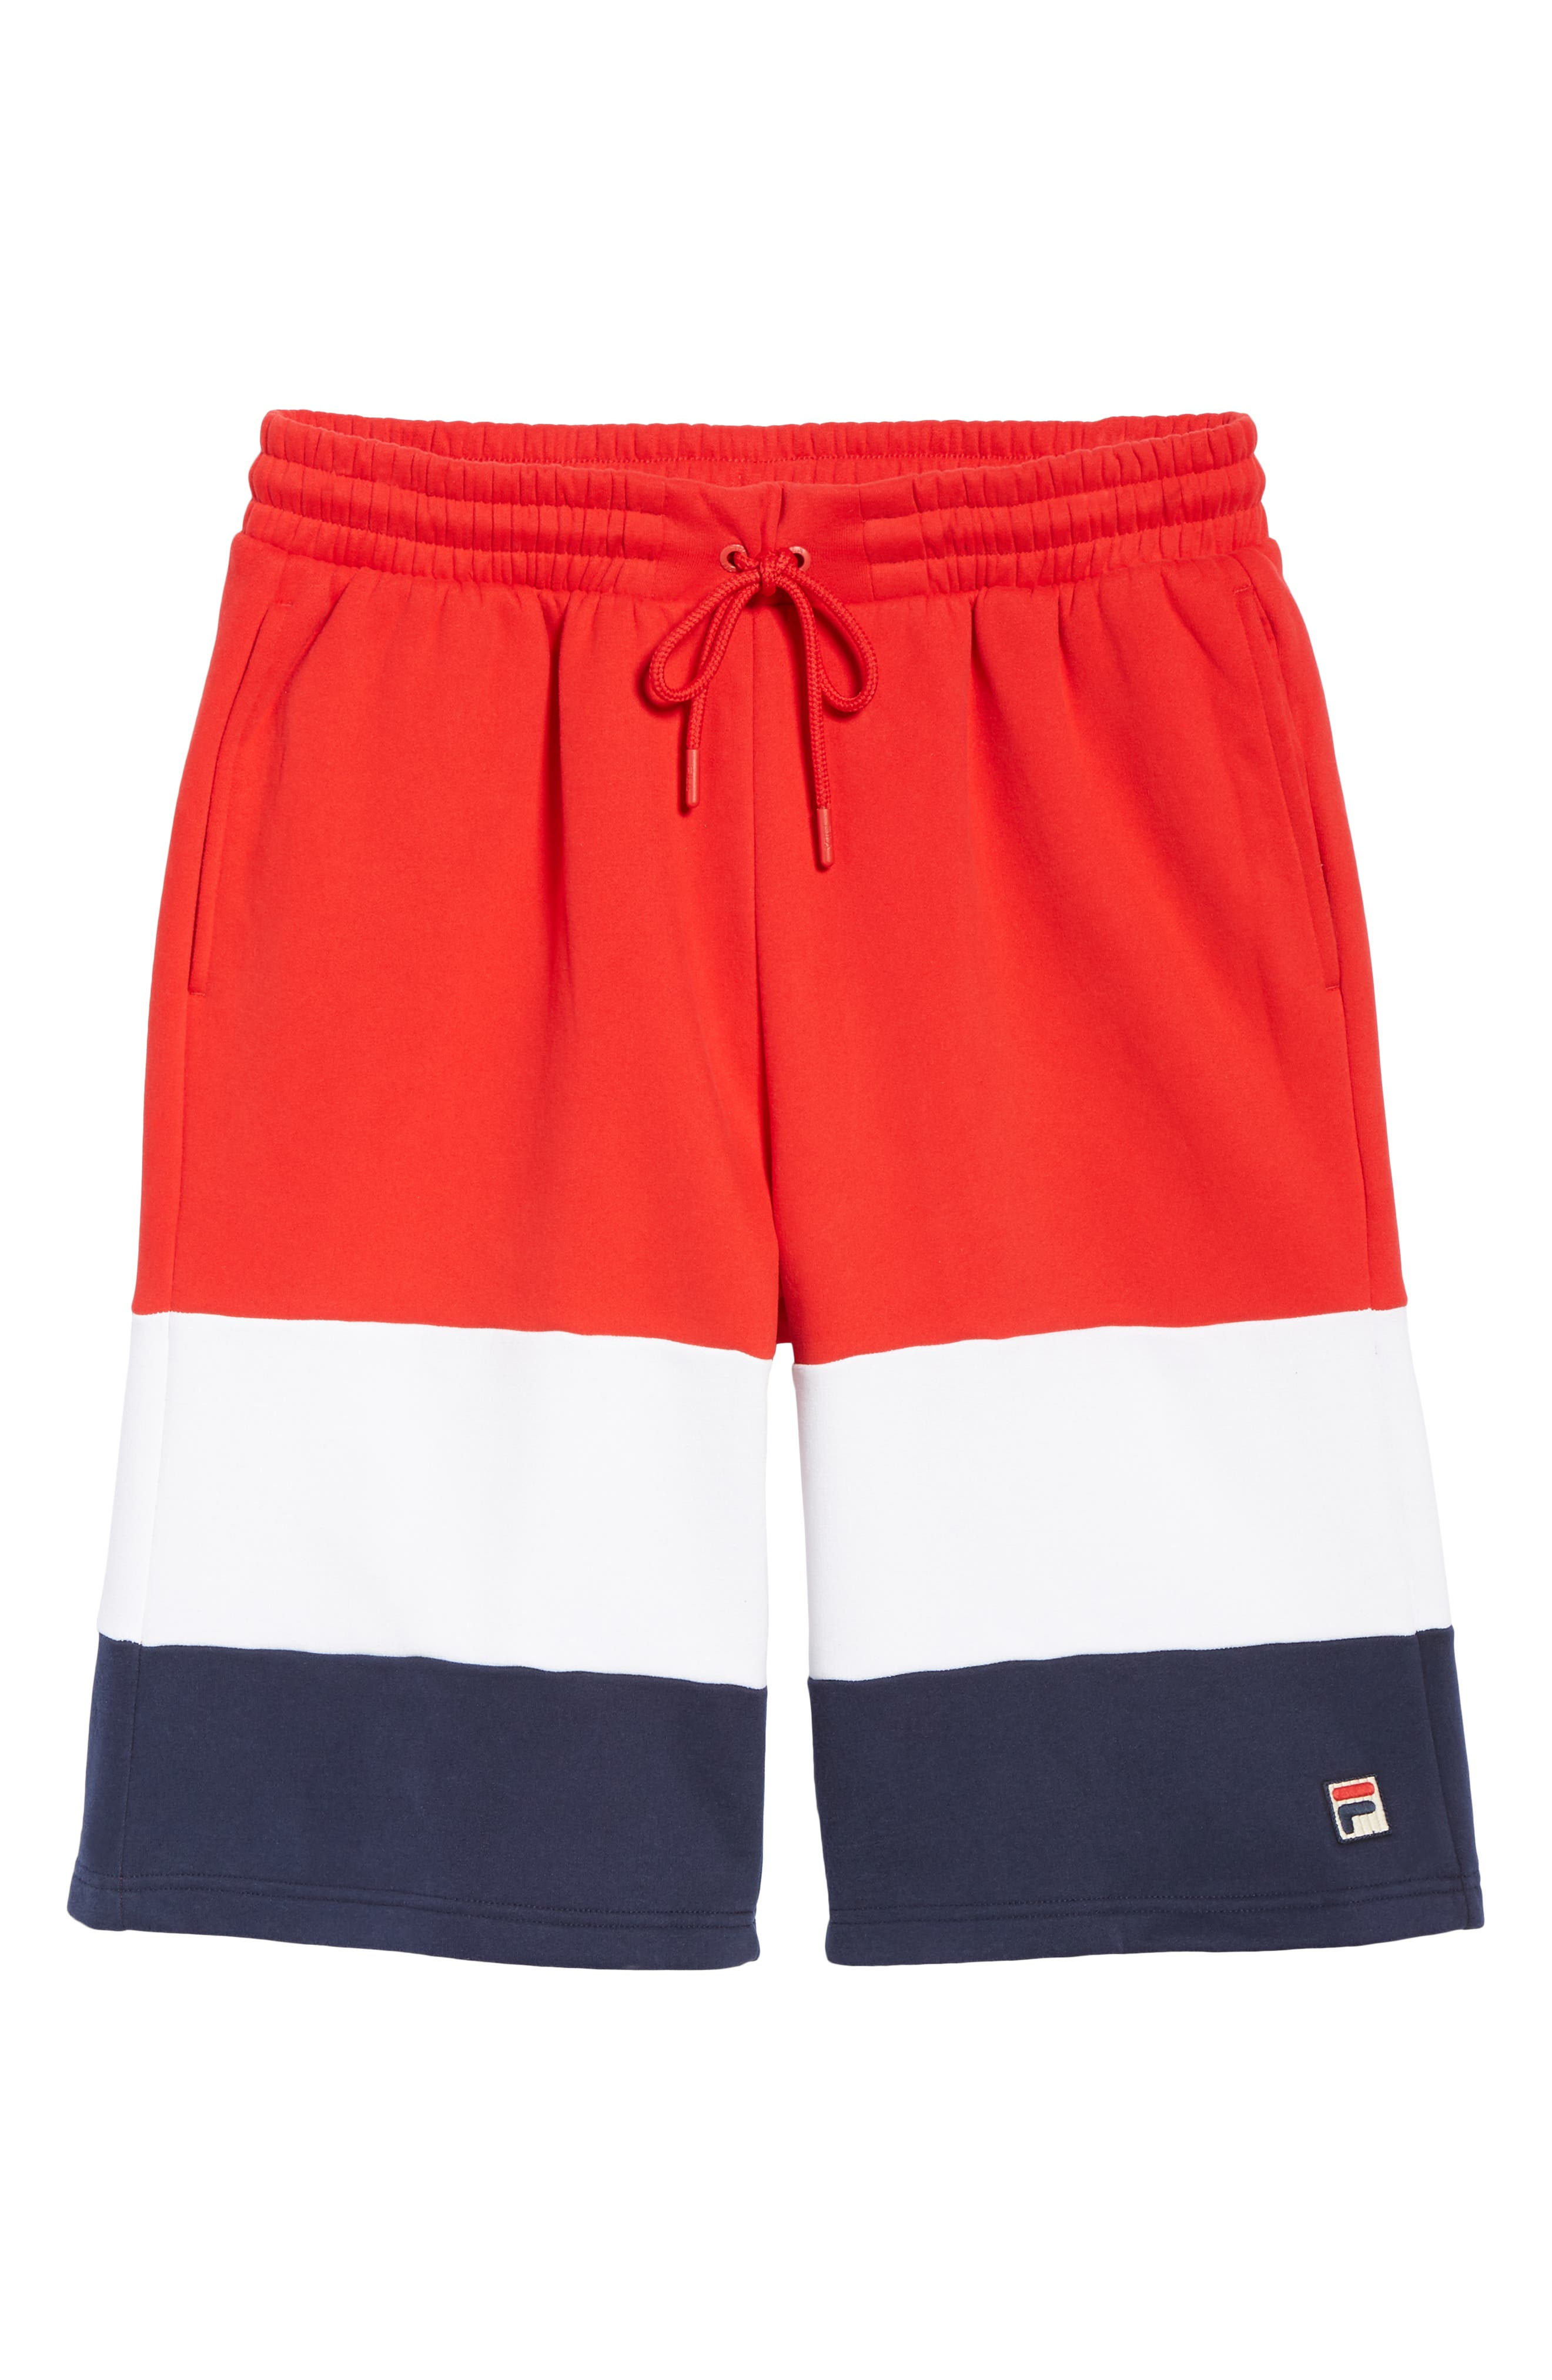 Alanzo Shorts,                             Alternate thumbnail 6, color,                             CHINESE RED/ WHITE/ NAVY